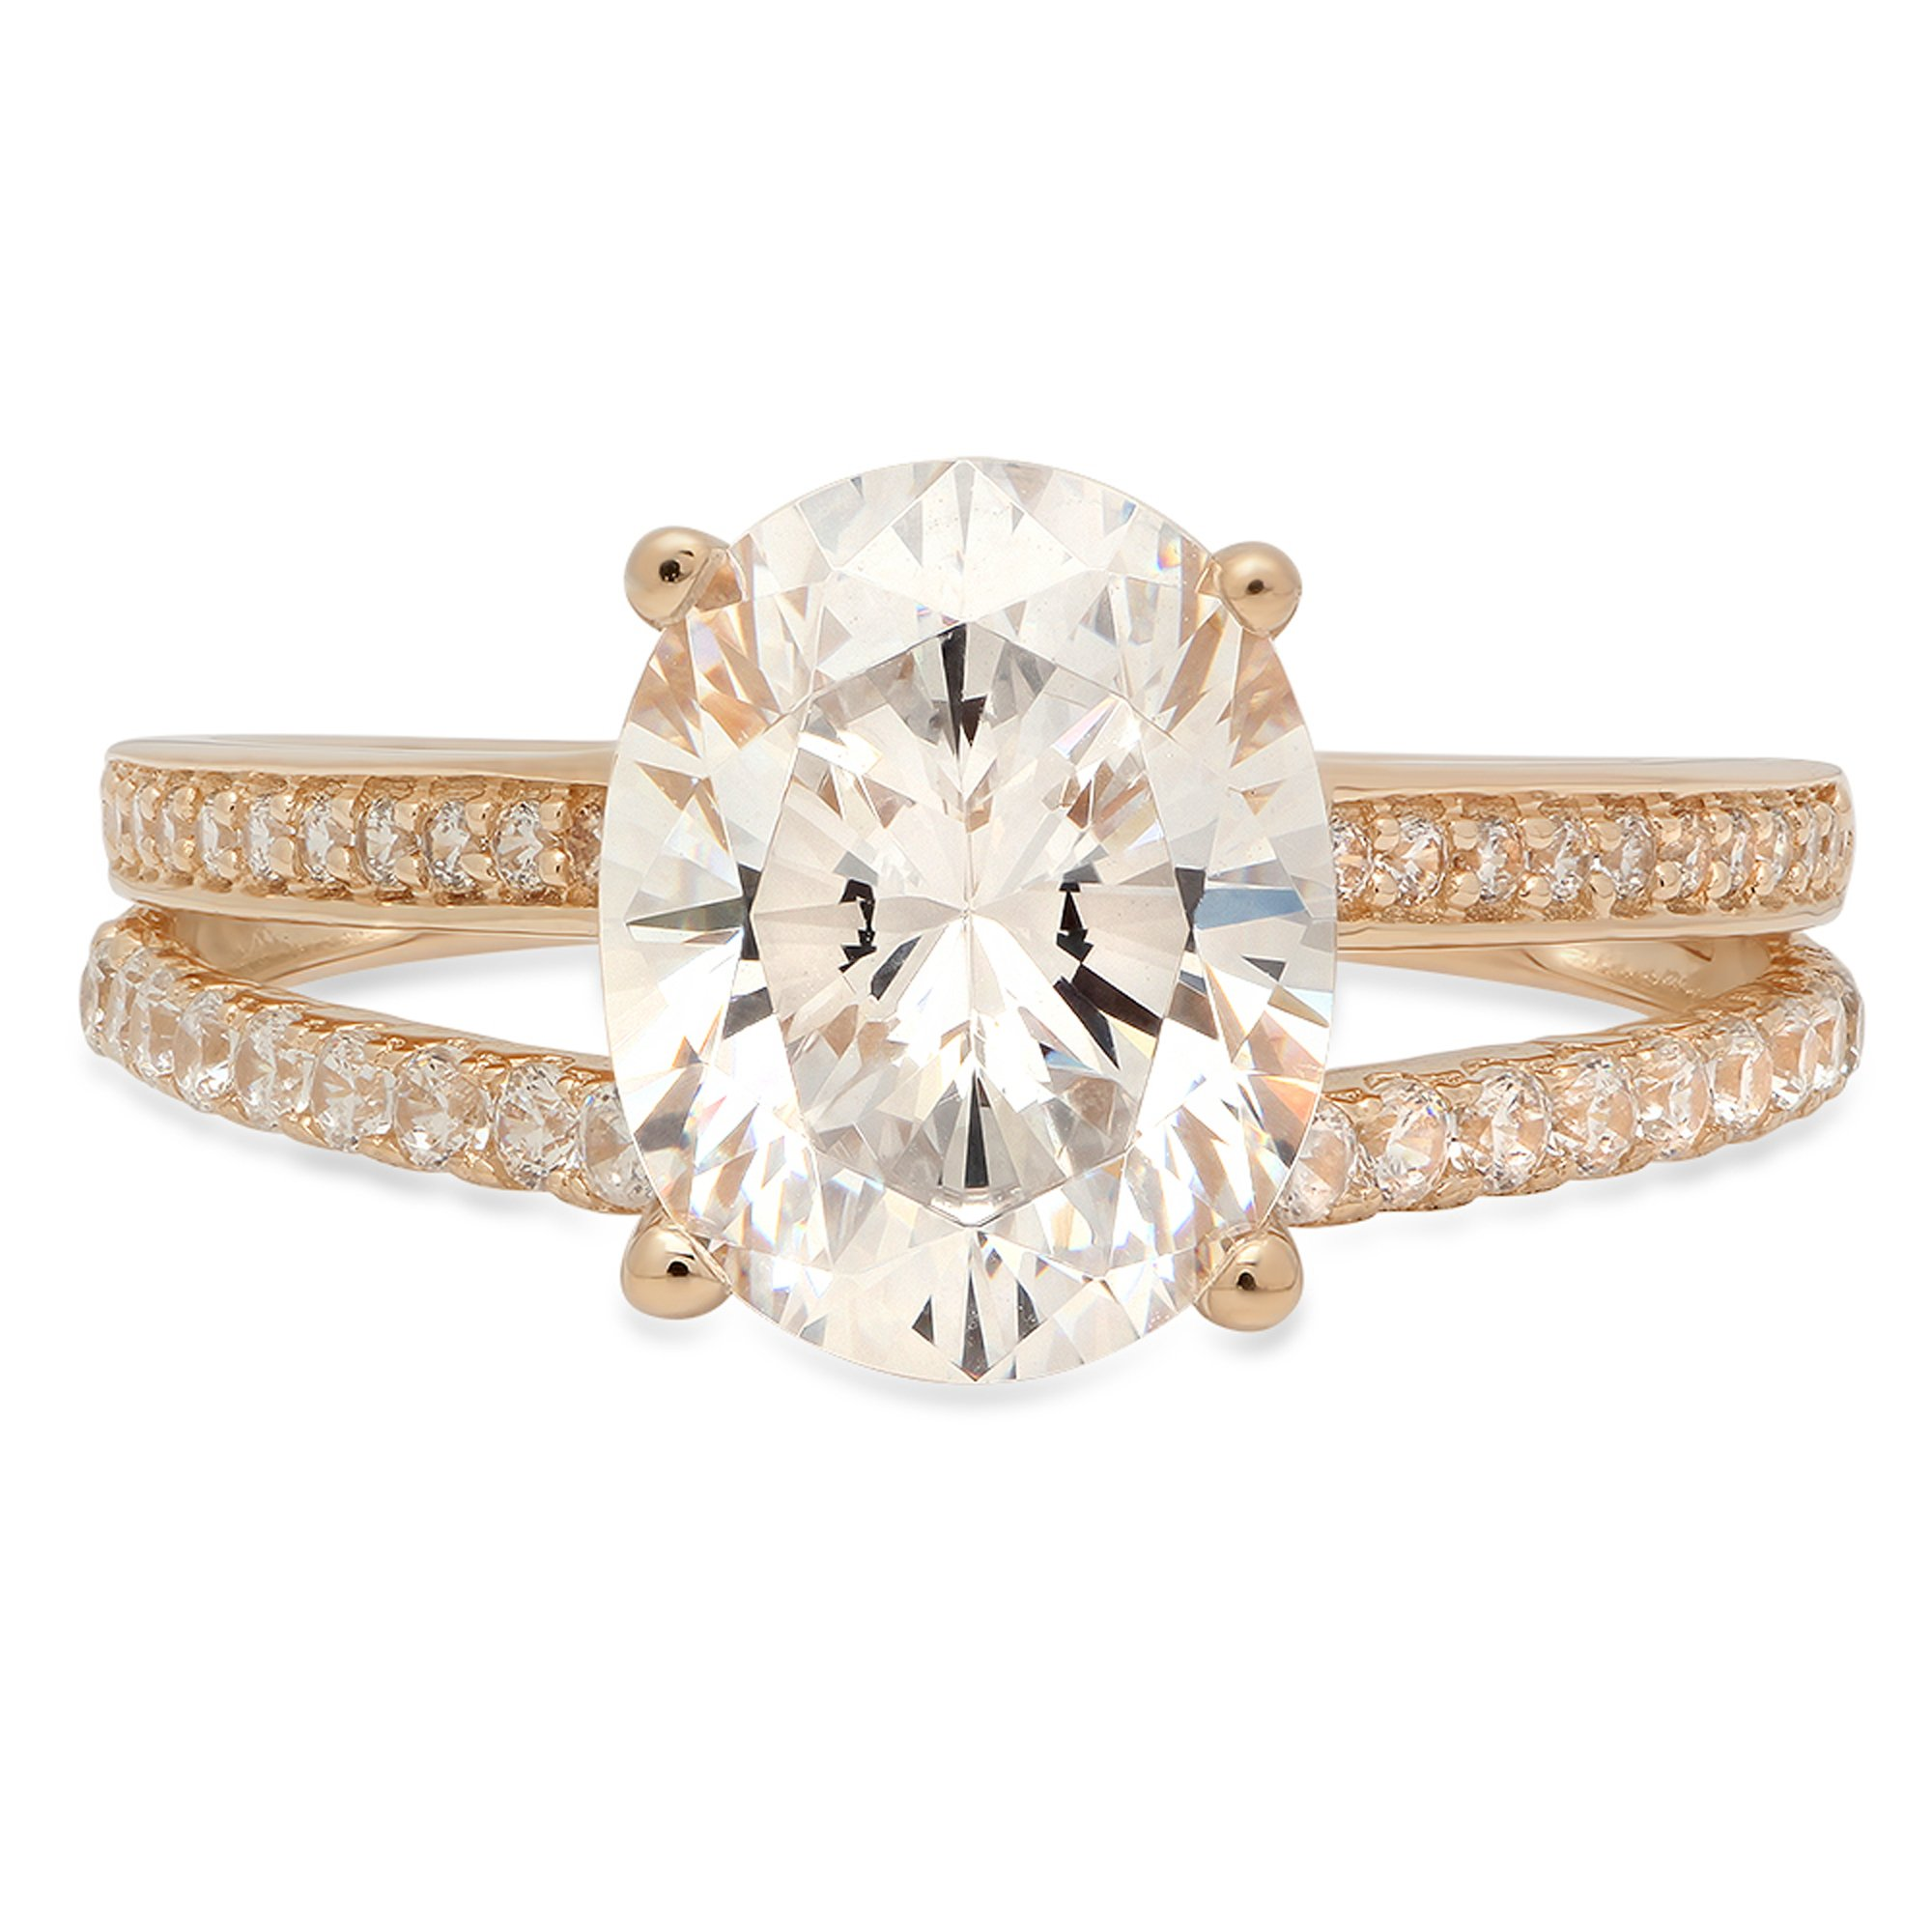 Clara Pucci 2.30ct Brilliant Oval Cut Engagement Wedding Promise Ring Bridal Jewelry in Solid 14K Yellow Gold. Size 6